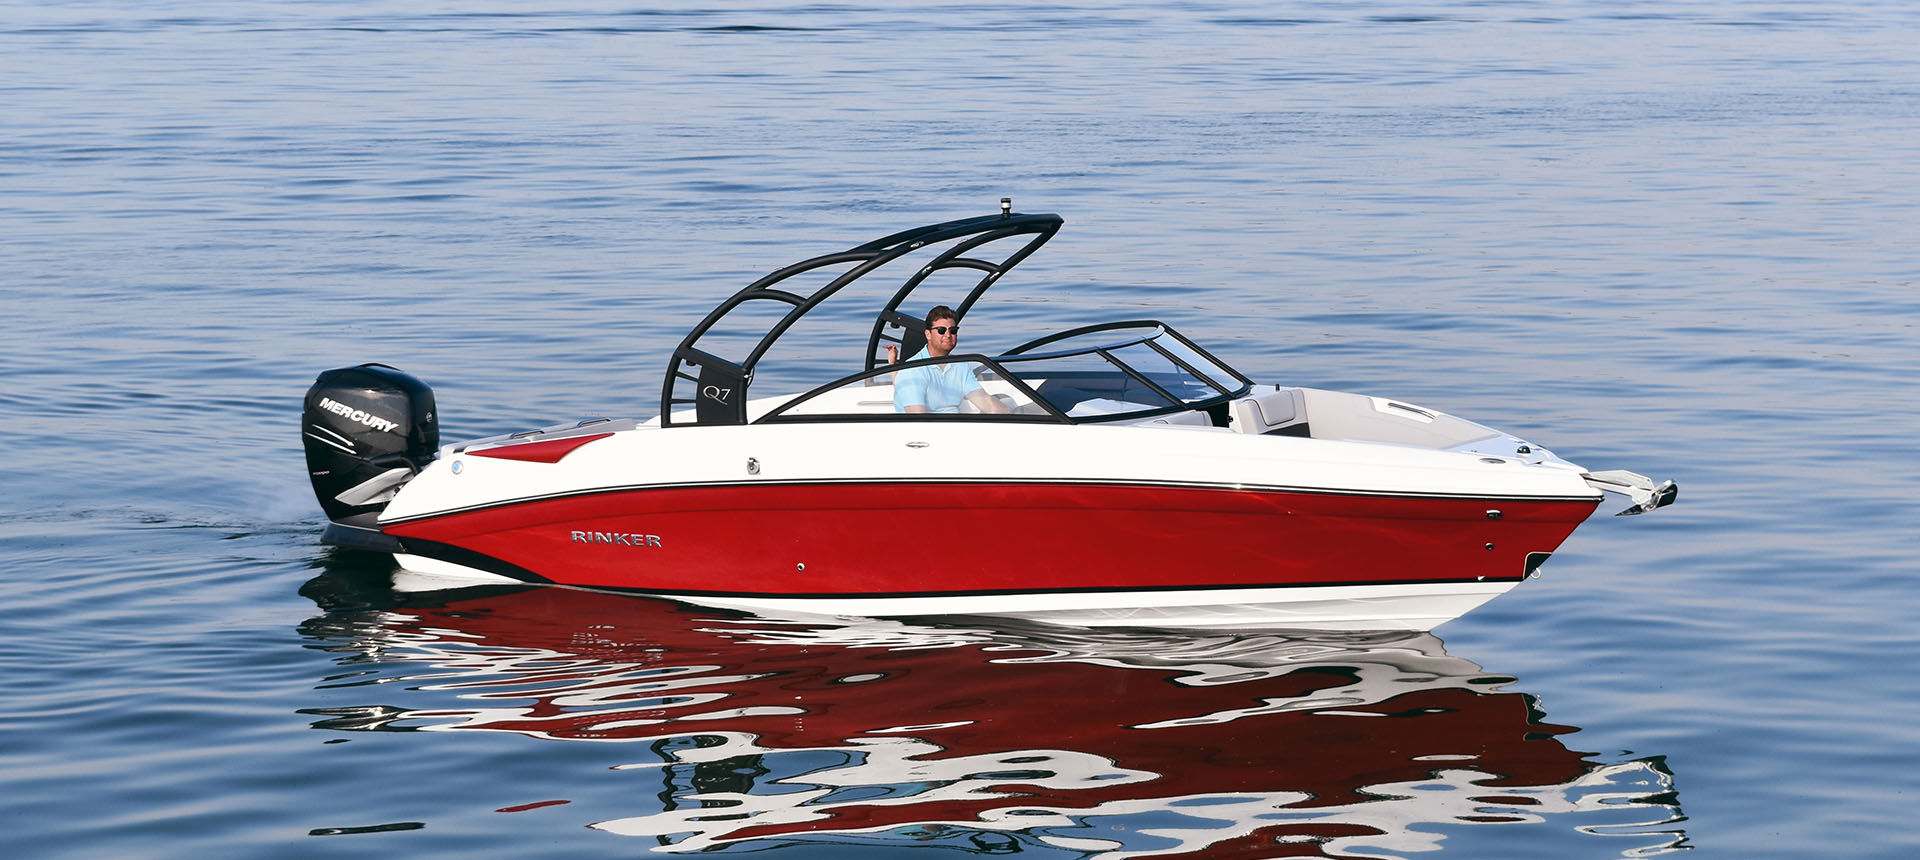 Pic of Q7 Outboard boat